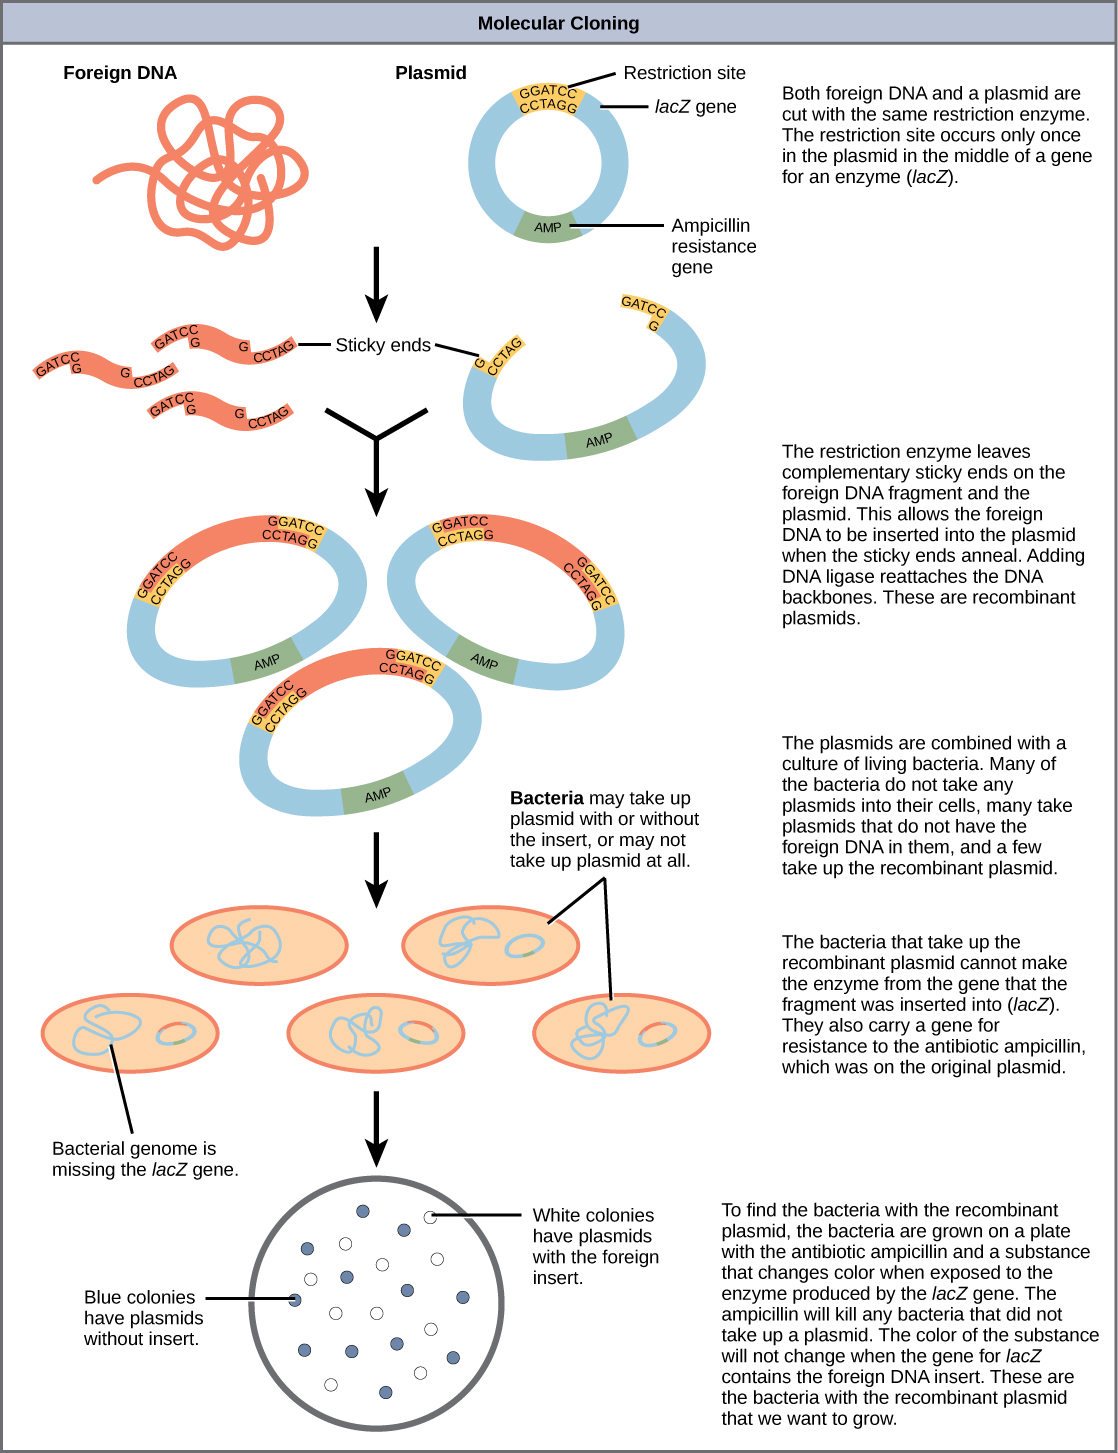 101 cloning and genetic engineering concepts of biology 1st an illustration showing the steps in creating recombinant dna plasmids inserting them into bacteria ccuart Gallery